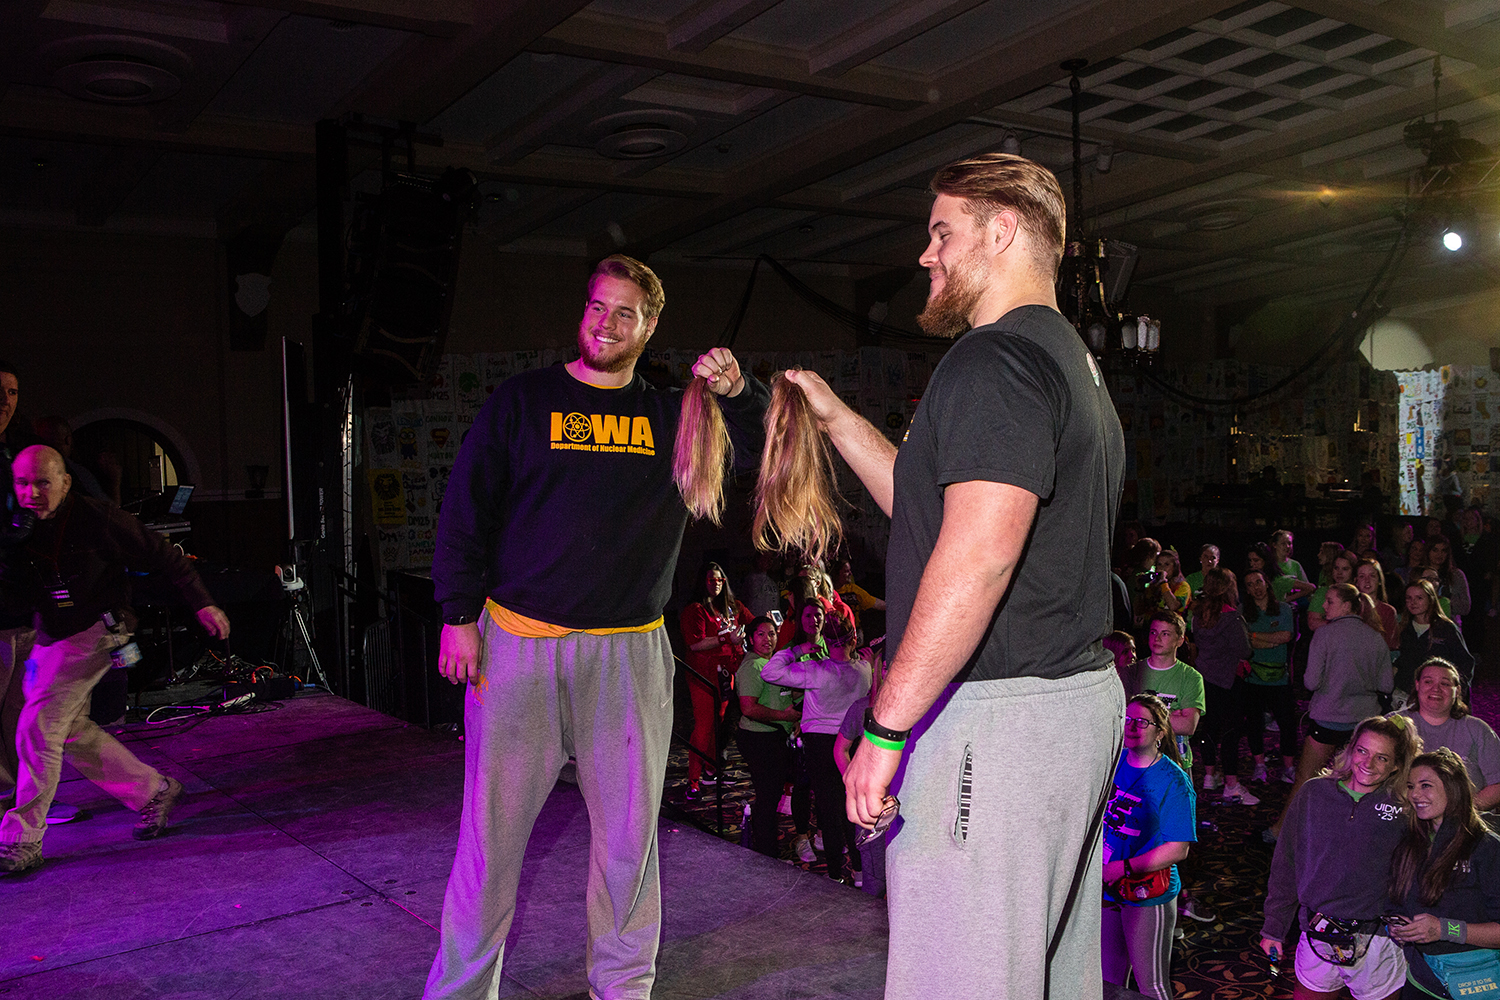 Landon (left) and Levi Paulson (right) hold up their hair during Dance Marathon 25 at the Iowa Memorial Union on Saturday, Feb. 2, 2019. After Landon's girlfriend Alexis Henry raised over $10,000 for the Big Event, the twins committed to losing their locks.